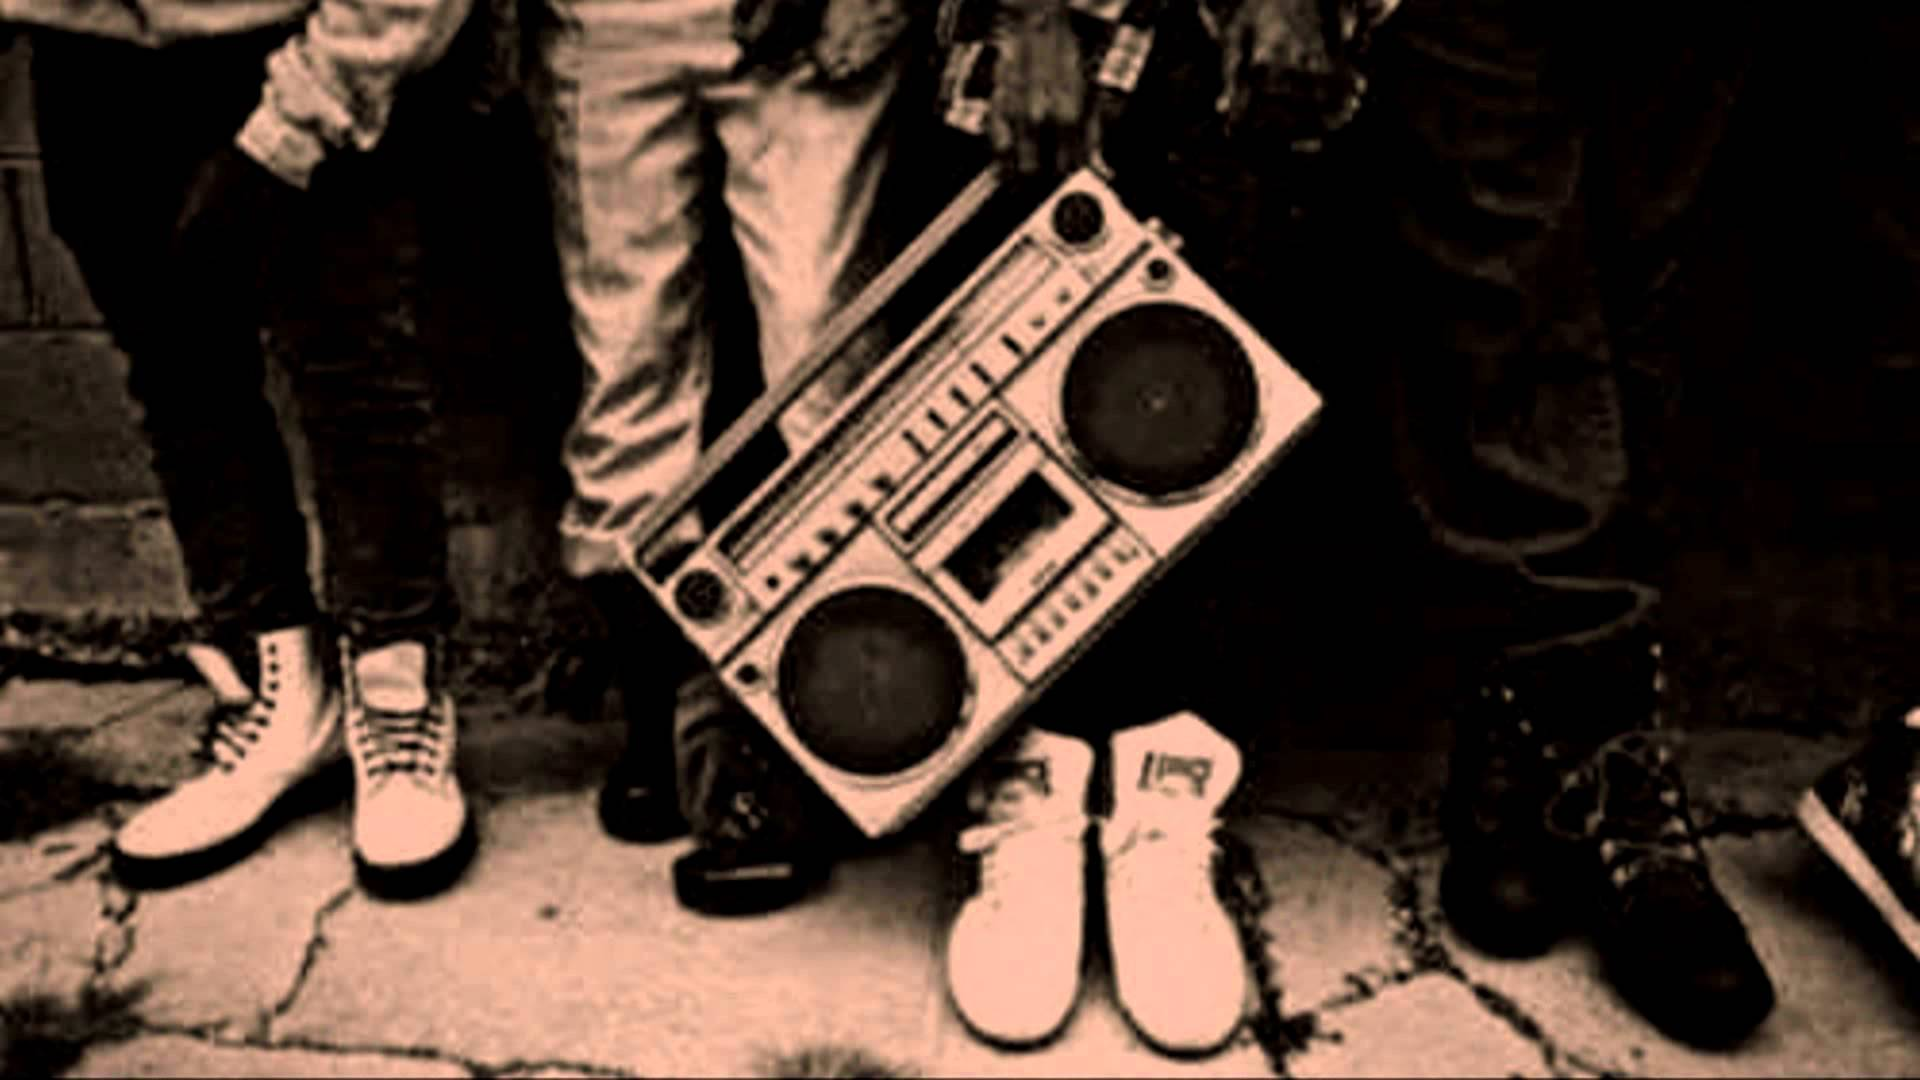 49] Old School Hip Hop Wallpaper on WallpaperSafari 1920x1080